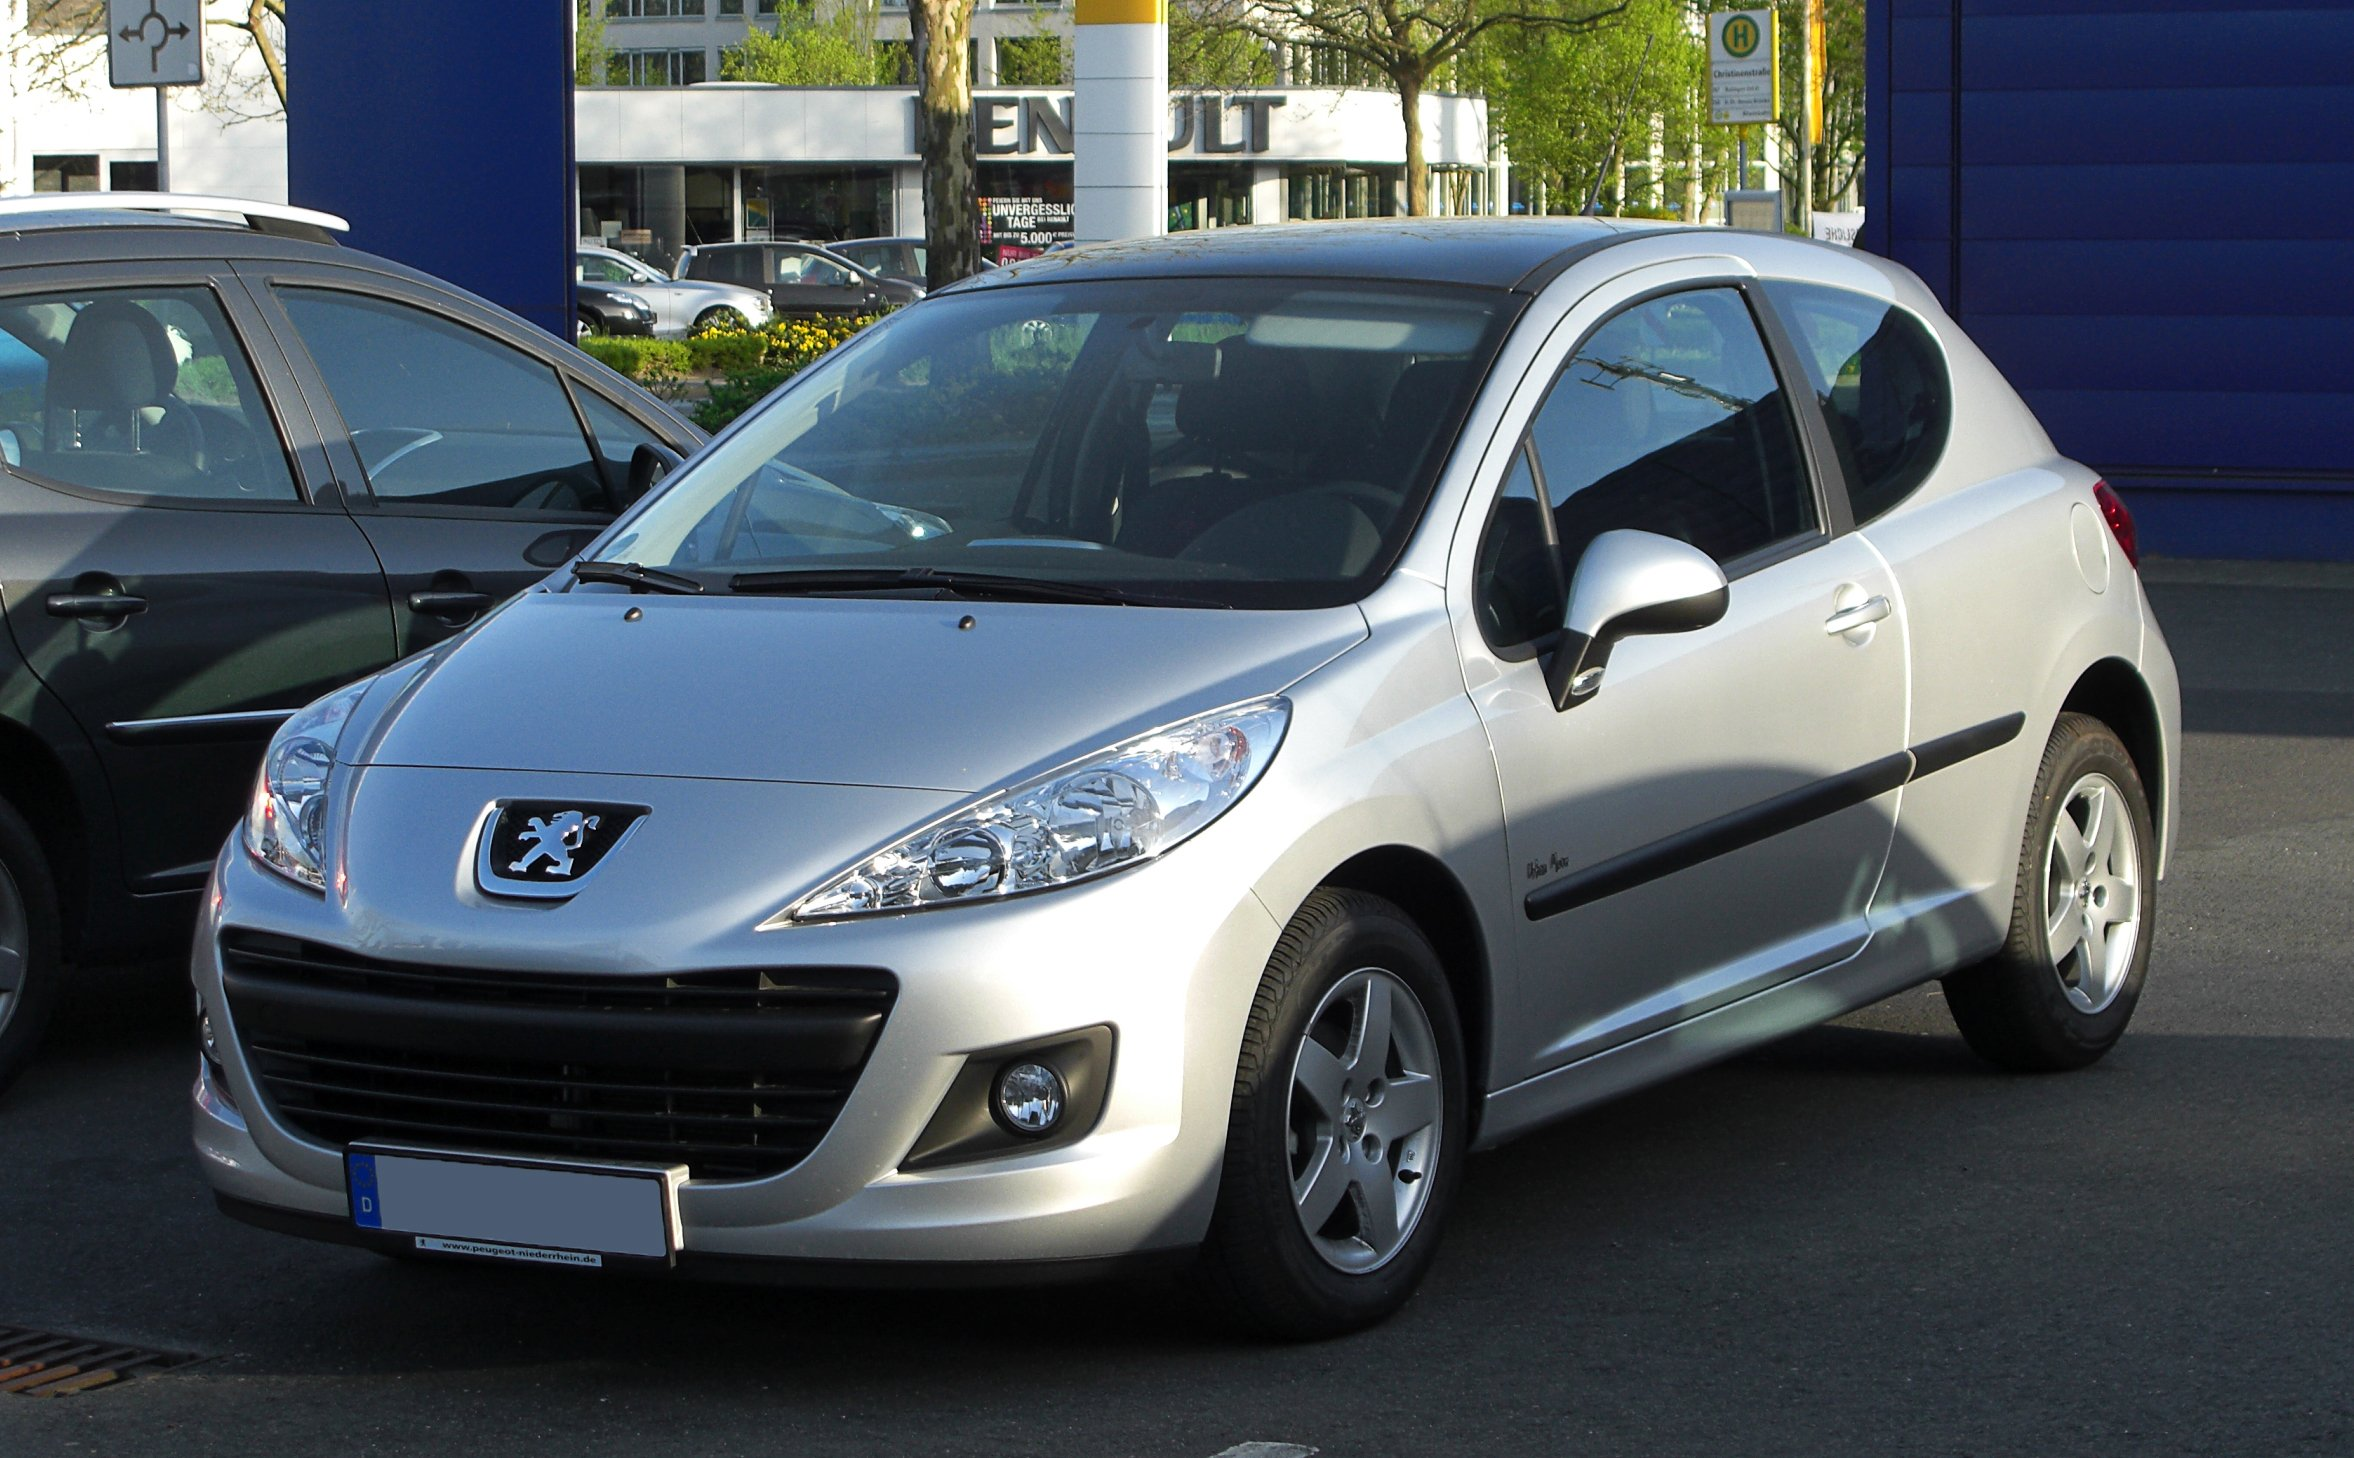 2011 peugeot 207 pictures information and specs auto. Black Bedroom Furniture Sets. Home Design Ideas